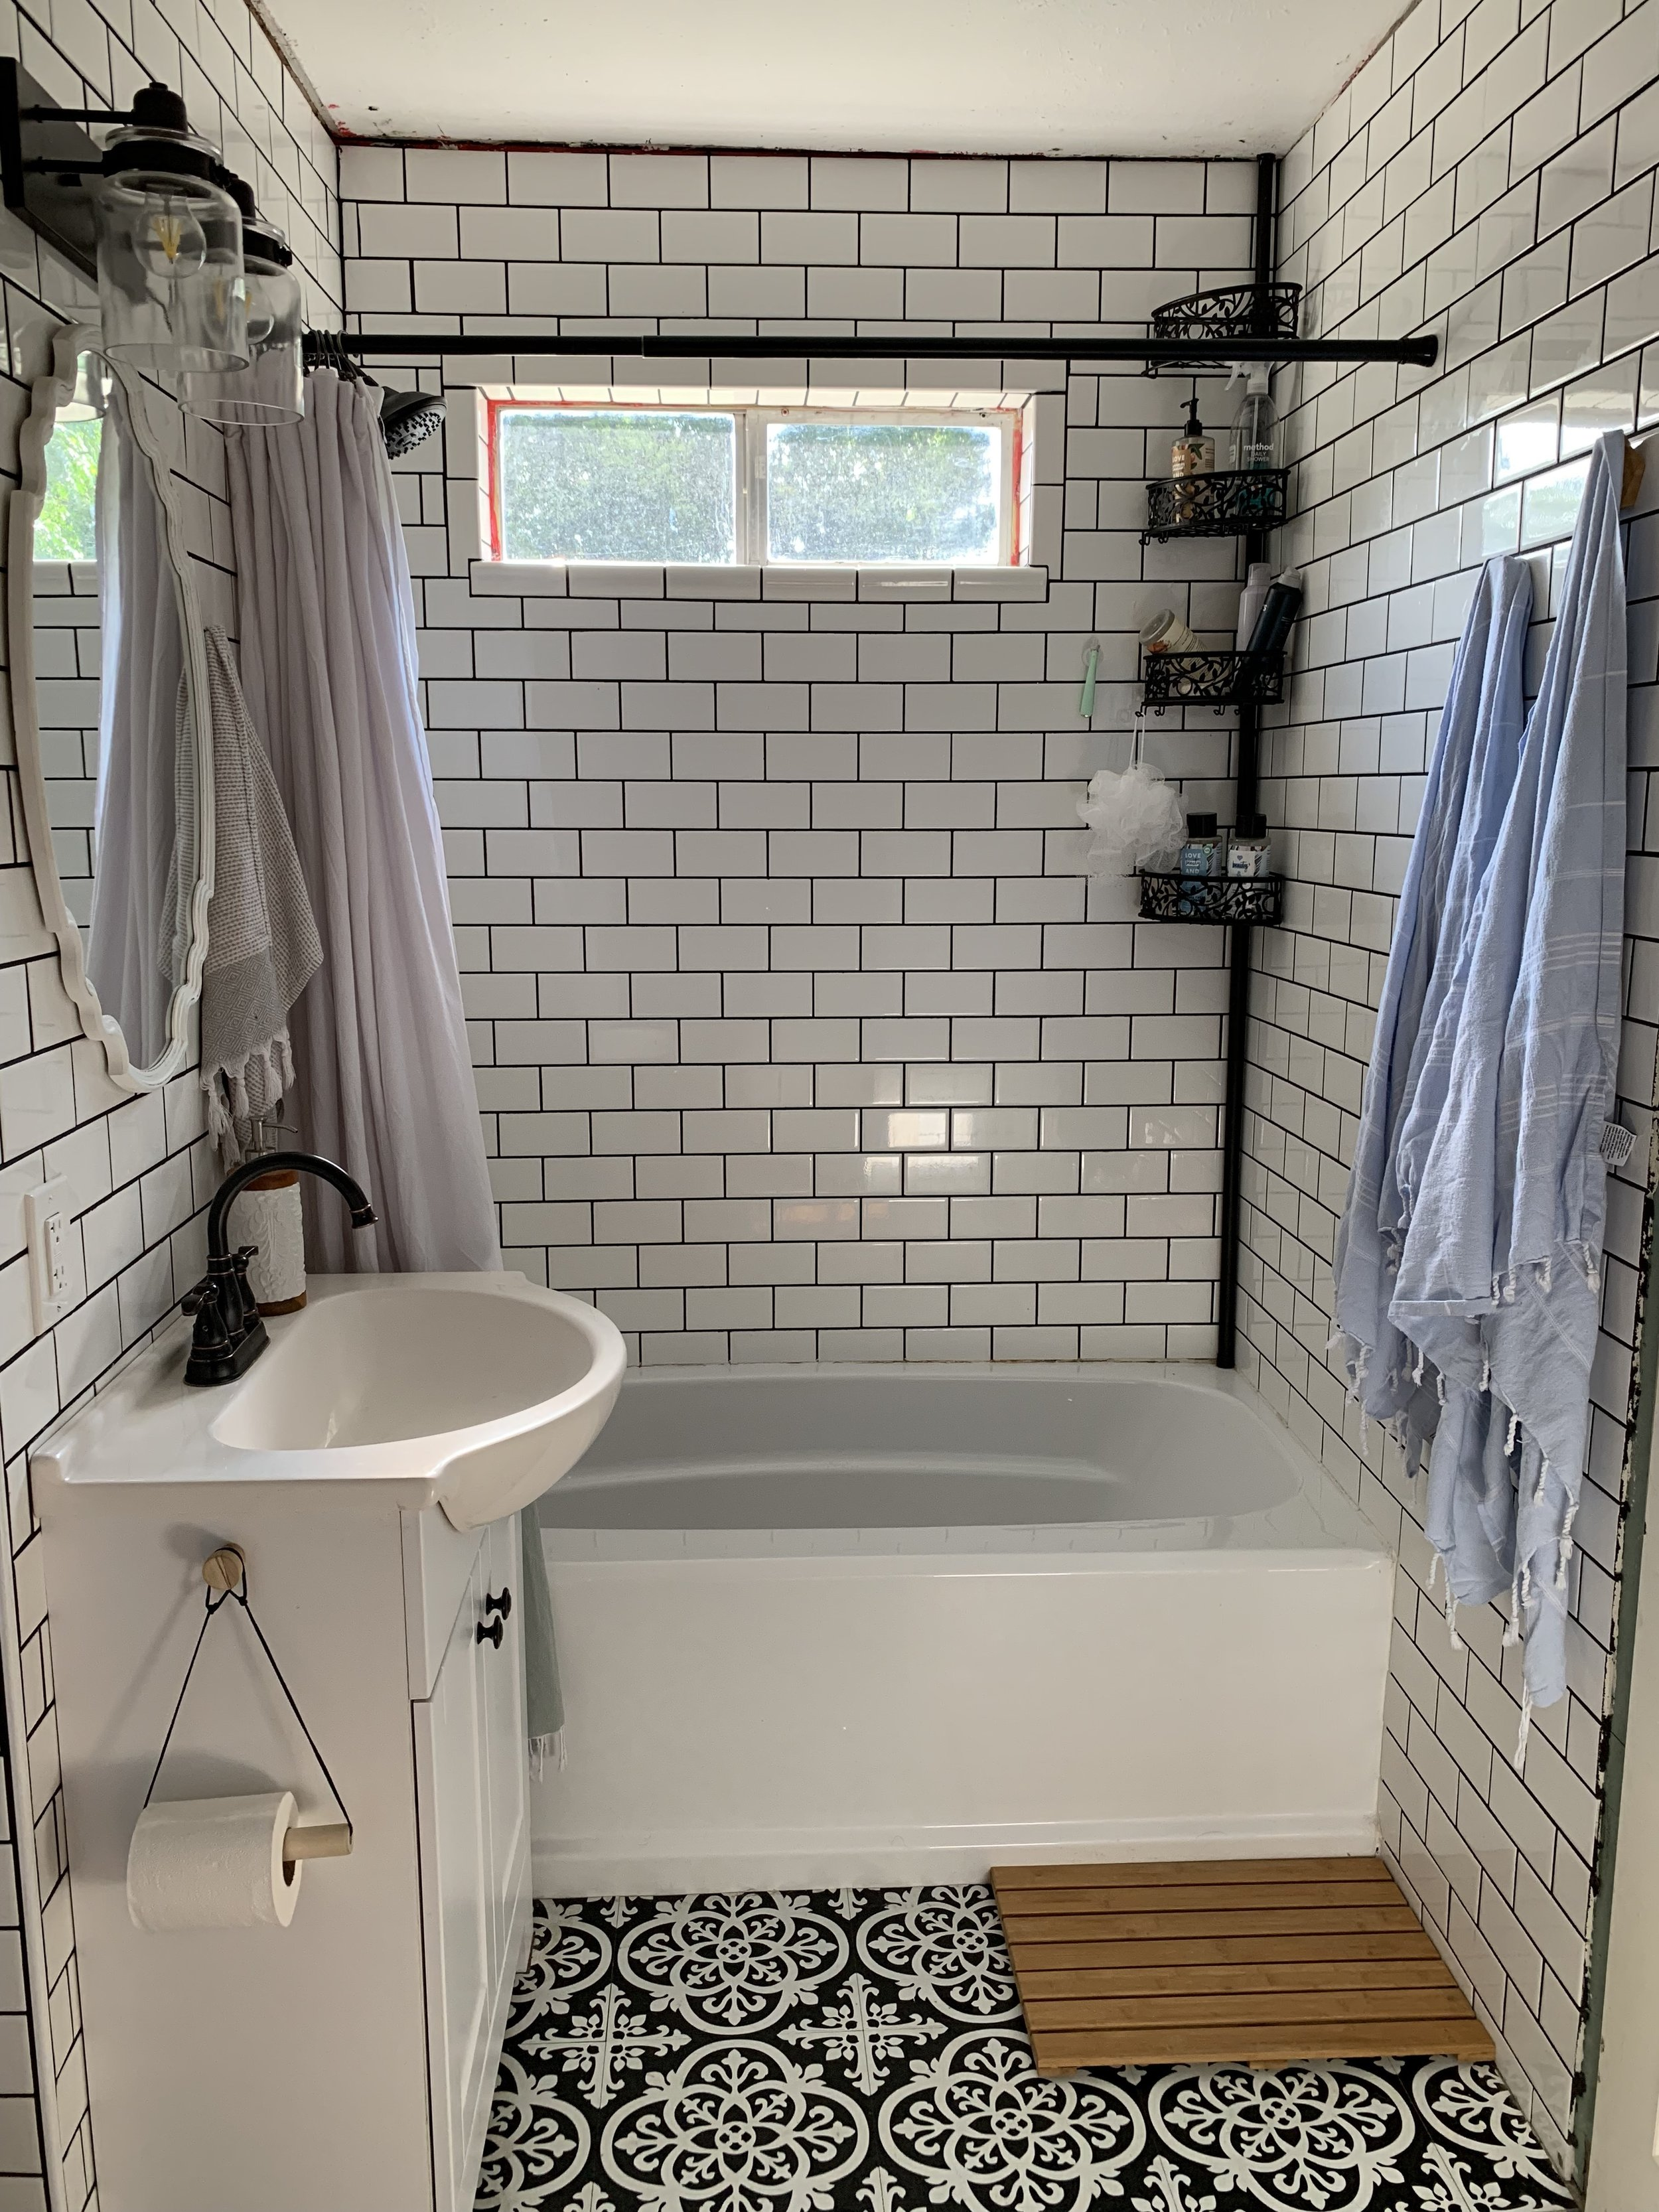 This tile is gorgeous, and I'm beyond proud of Jordan. This bathroom gets filled with natural light every morning! We're planning to put in a wood slat ceiling in a darker stain to counter the clean, modern lines of the tile. Yummy.